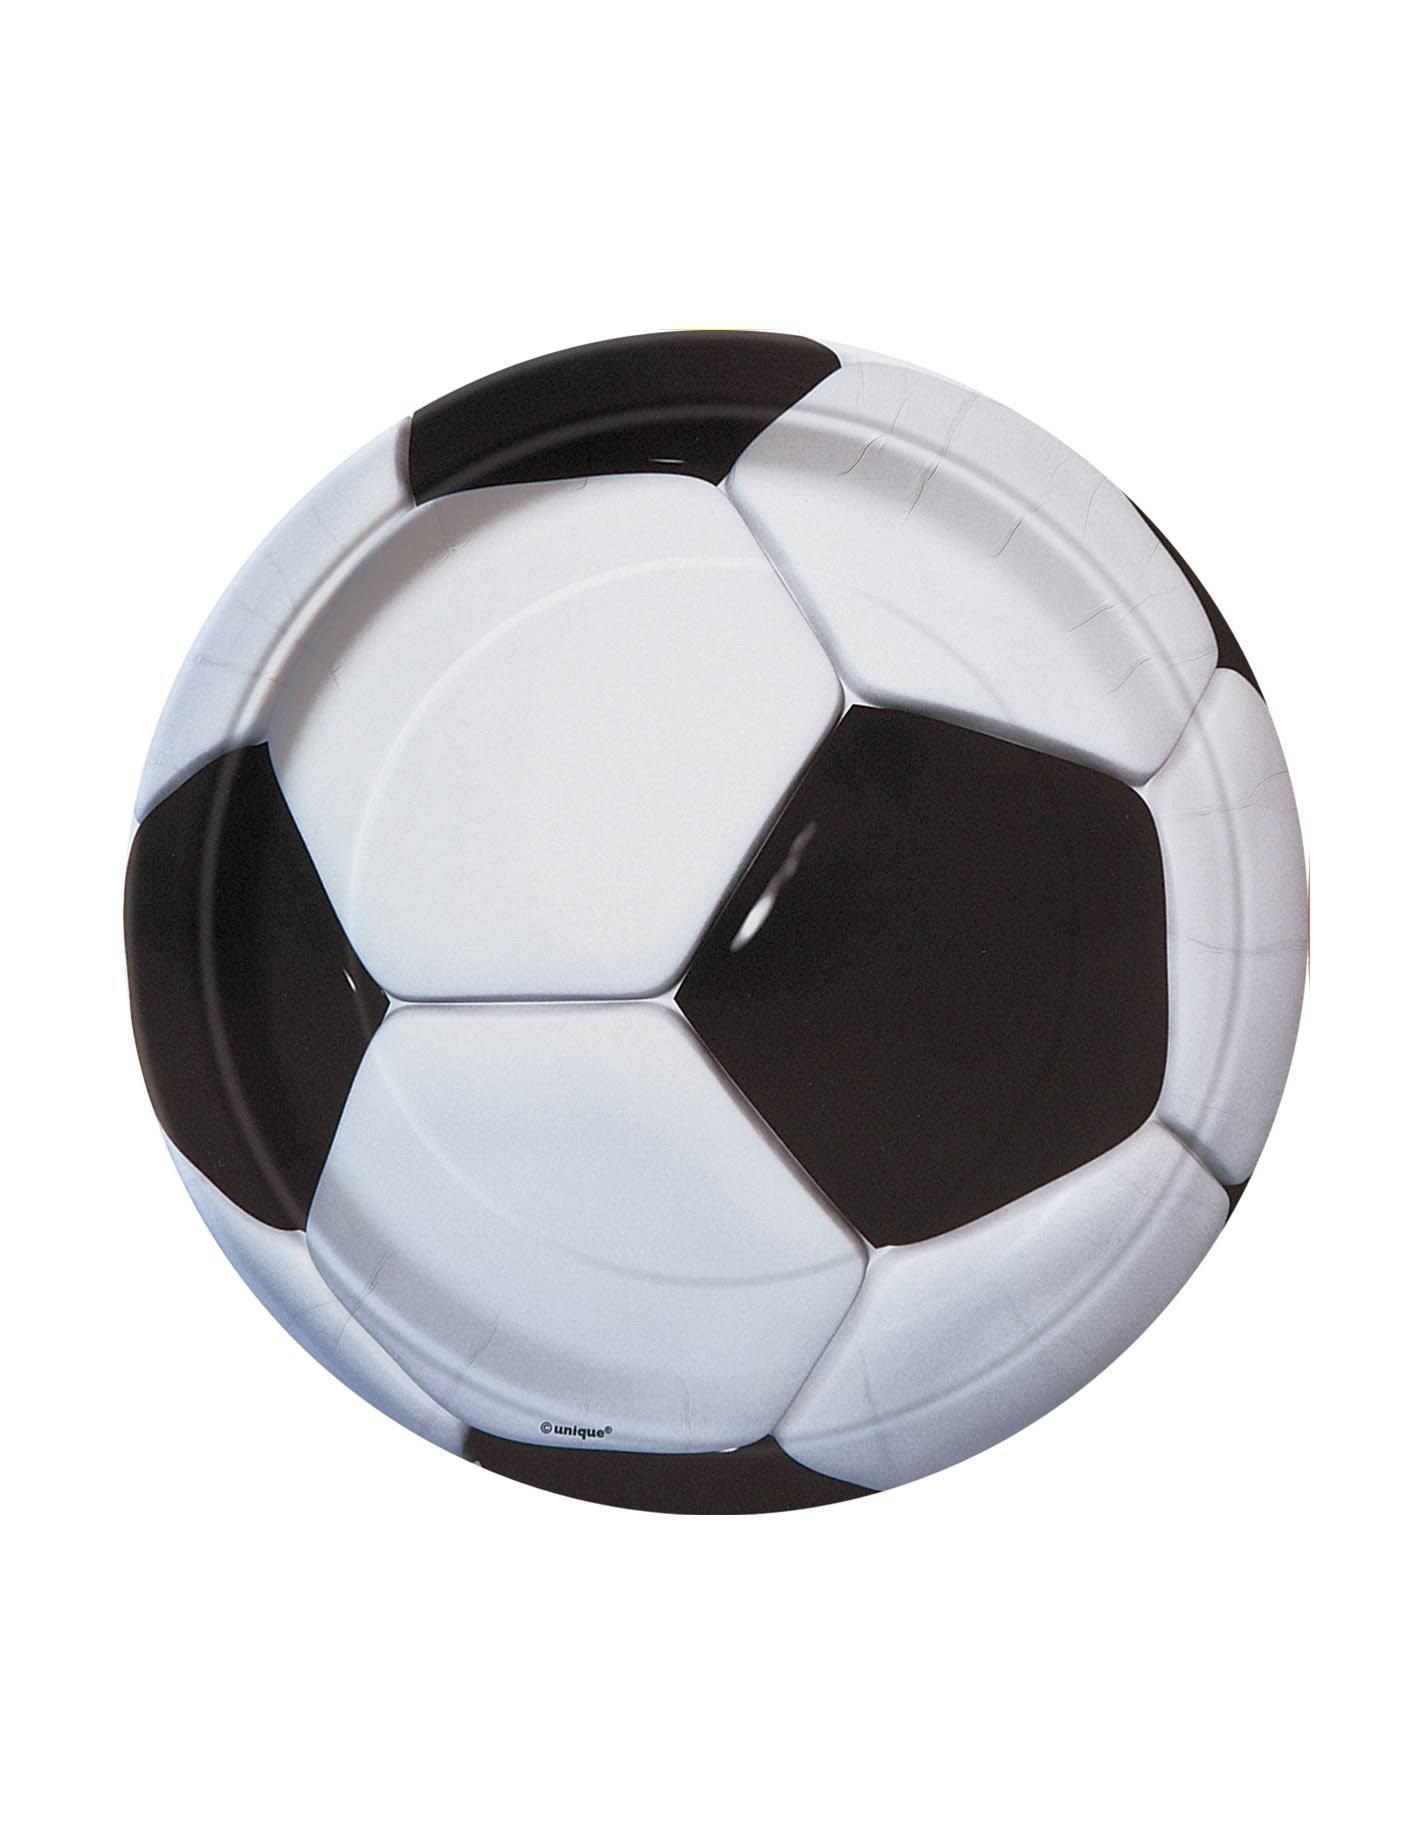 Unique Soccer Dessert Plates - 8ct